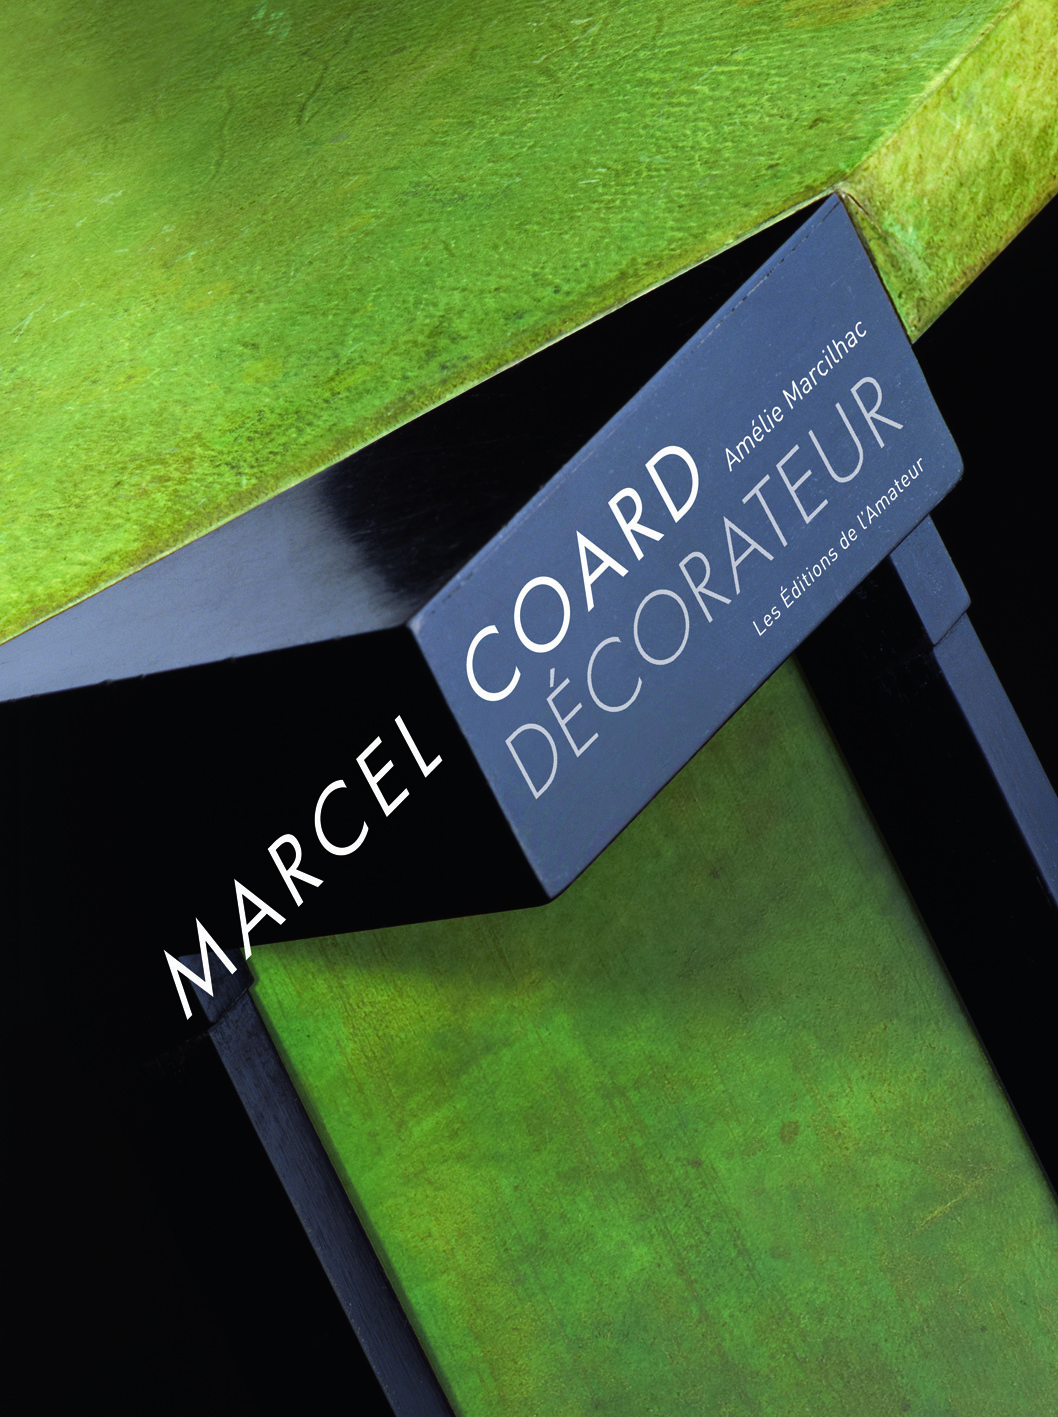 MARCEL COARD, DECORATEUR